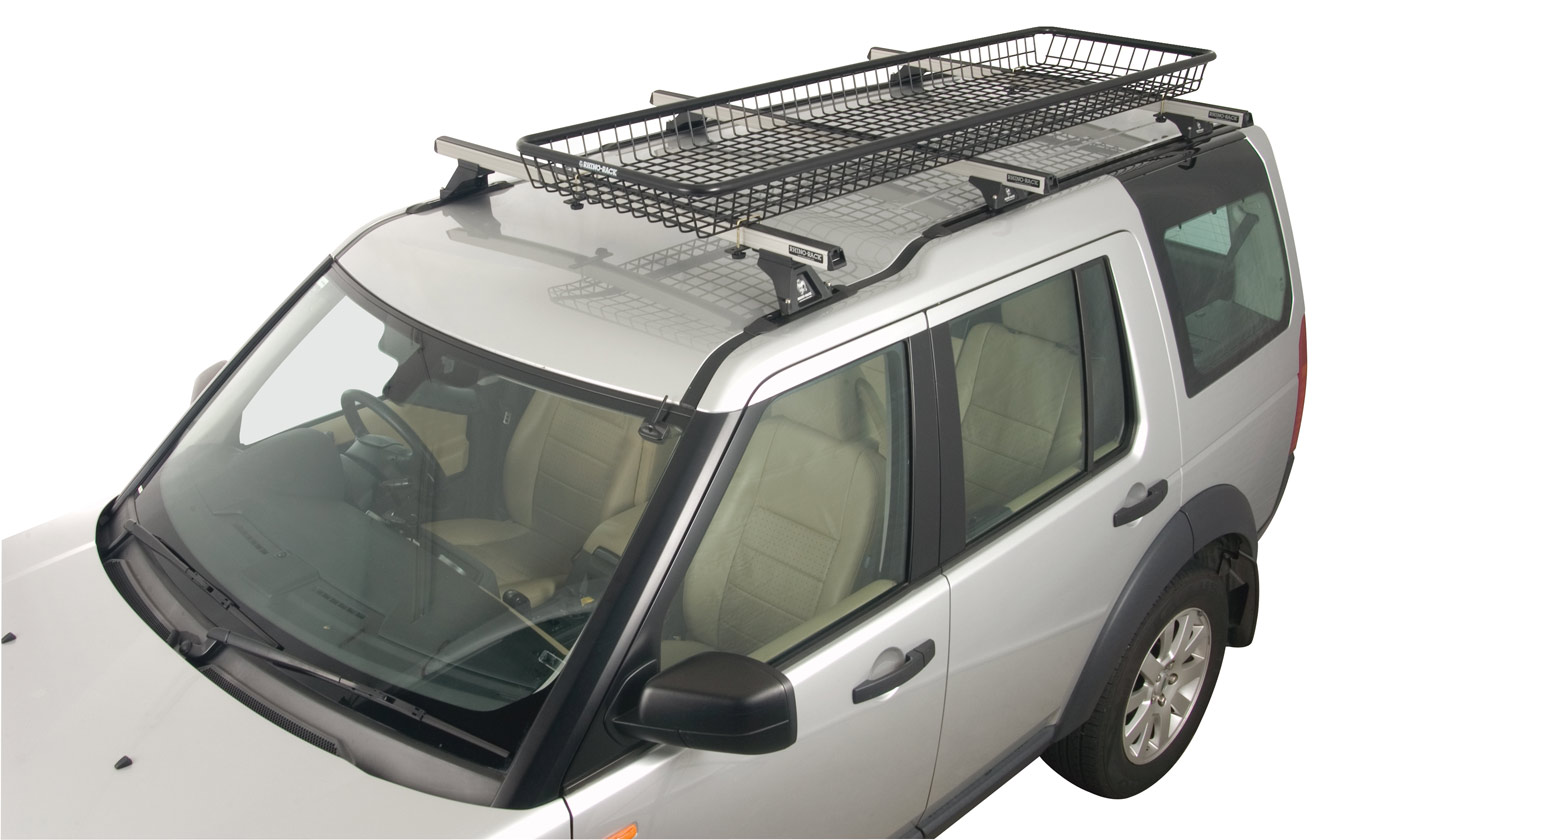 Rlbhl Steel Mesh Basket Half Long Rhino Rack